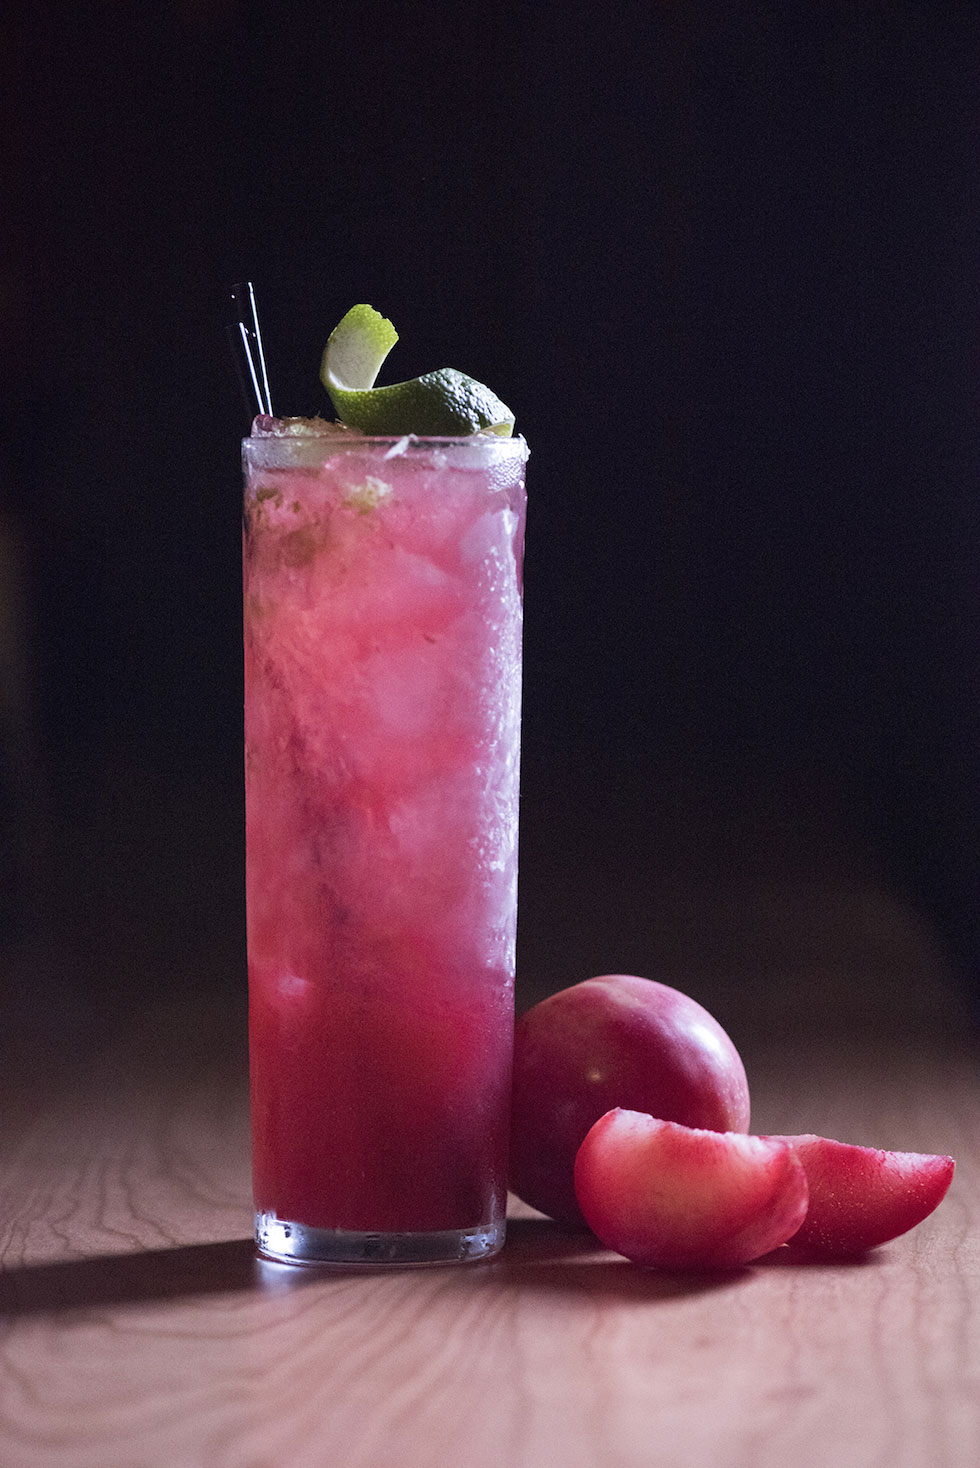 Everything about Nightbird is thoughtful and sophisticated, from the cocktails to the elegant preparation of the food